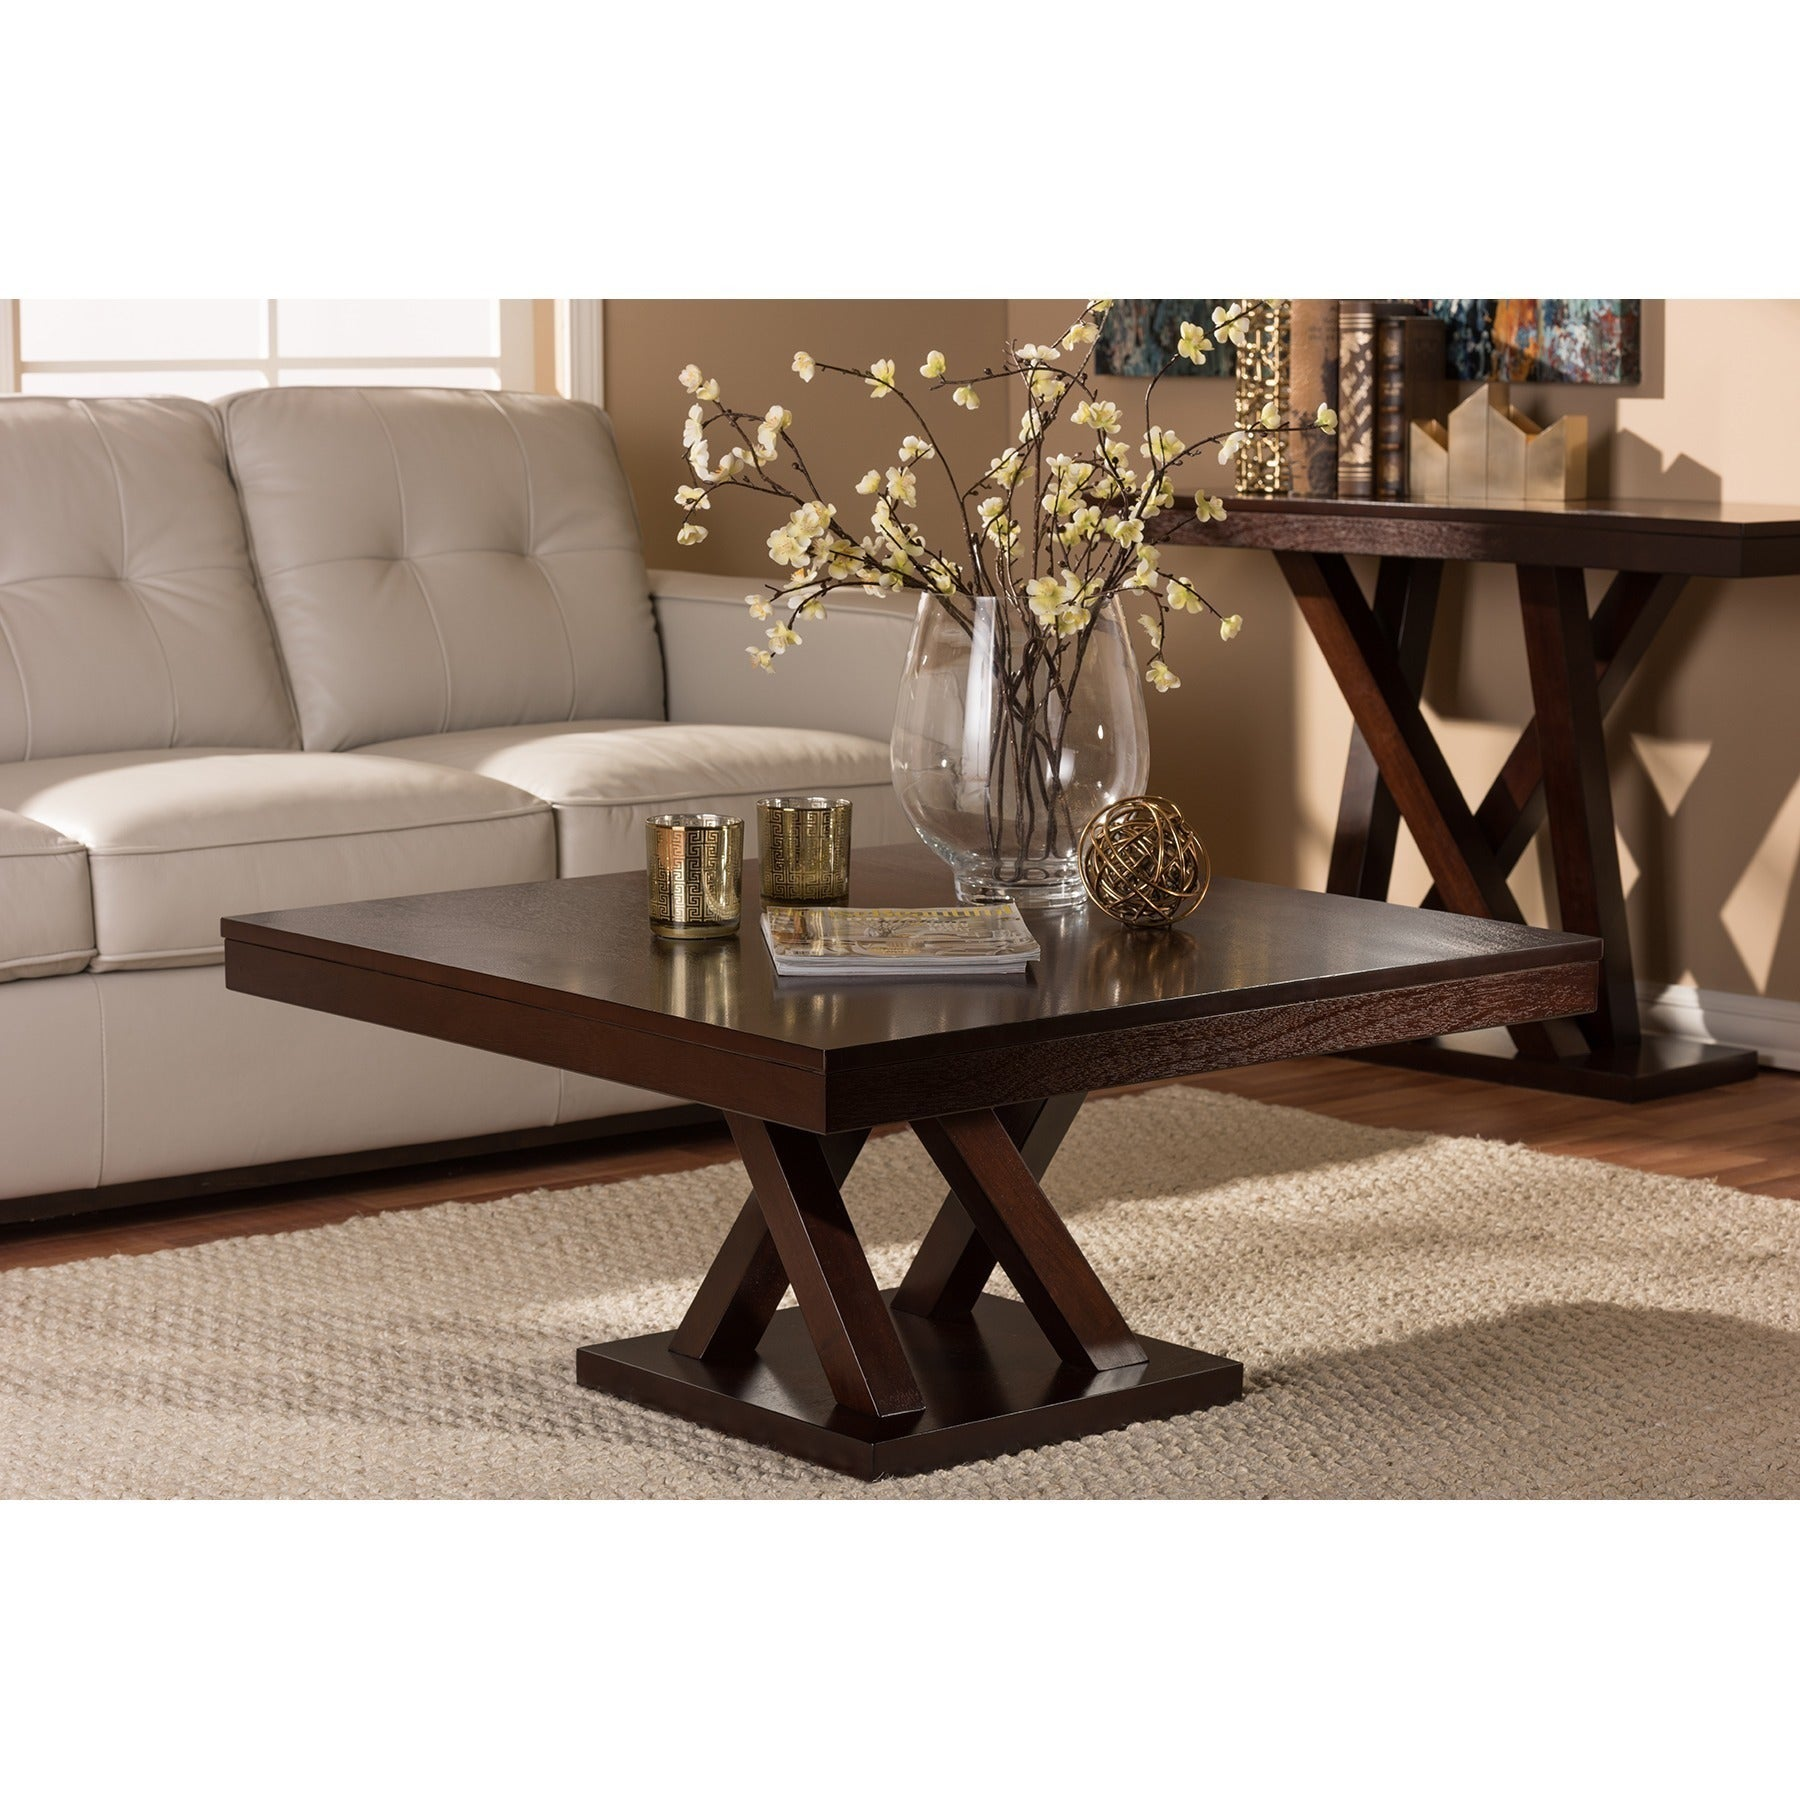 Shop Modern Dark Brown Coffee Table By Baxton Studio Free Shipping